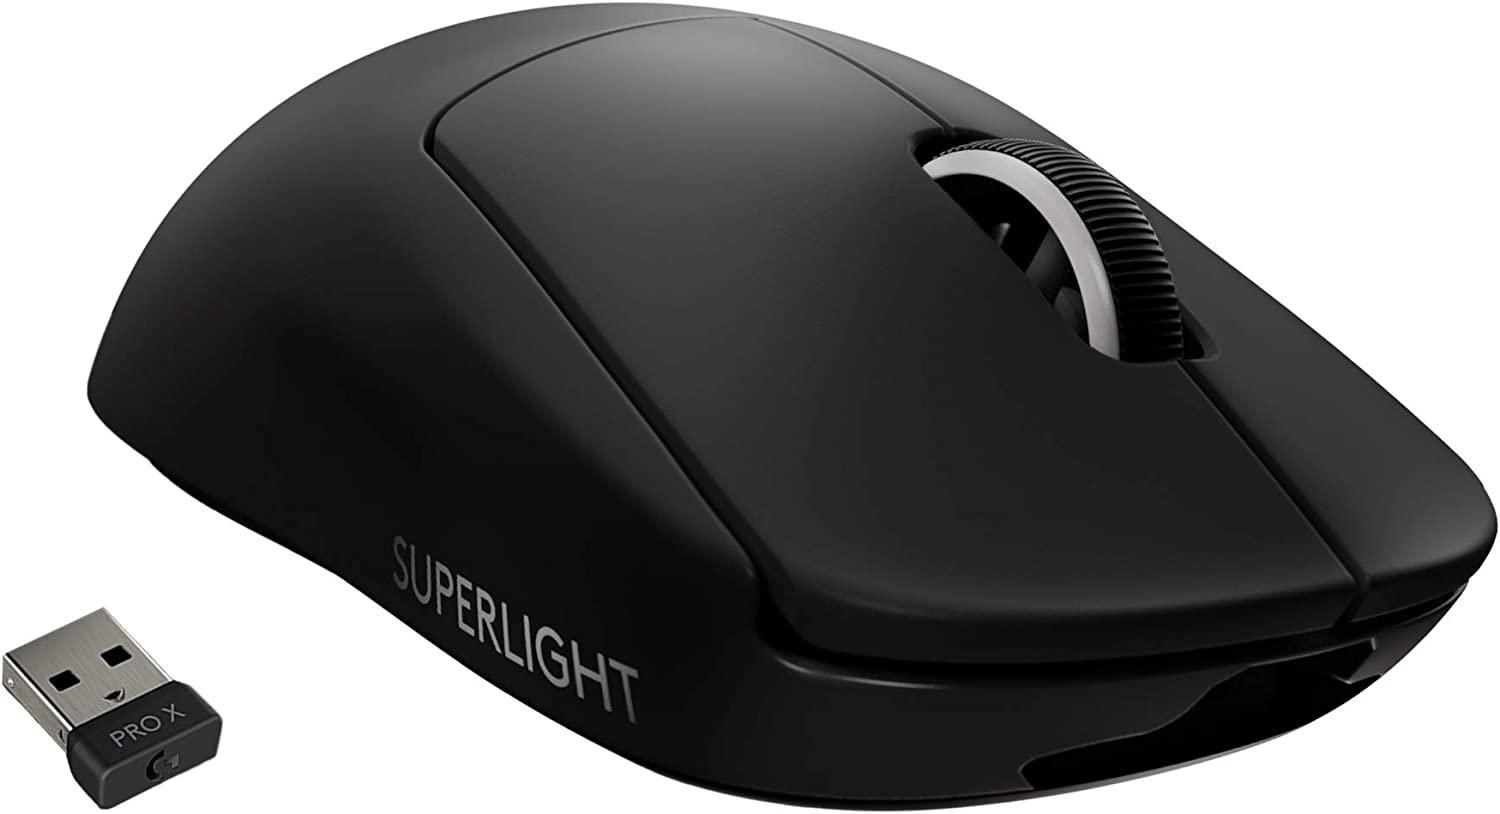 Logitech G PRO X SUPERLIGHT Wireless Gaming Mouse - Black High Speed USB port Lightweight Gaming Mouse Compatible with PC and Mac